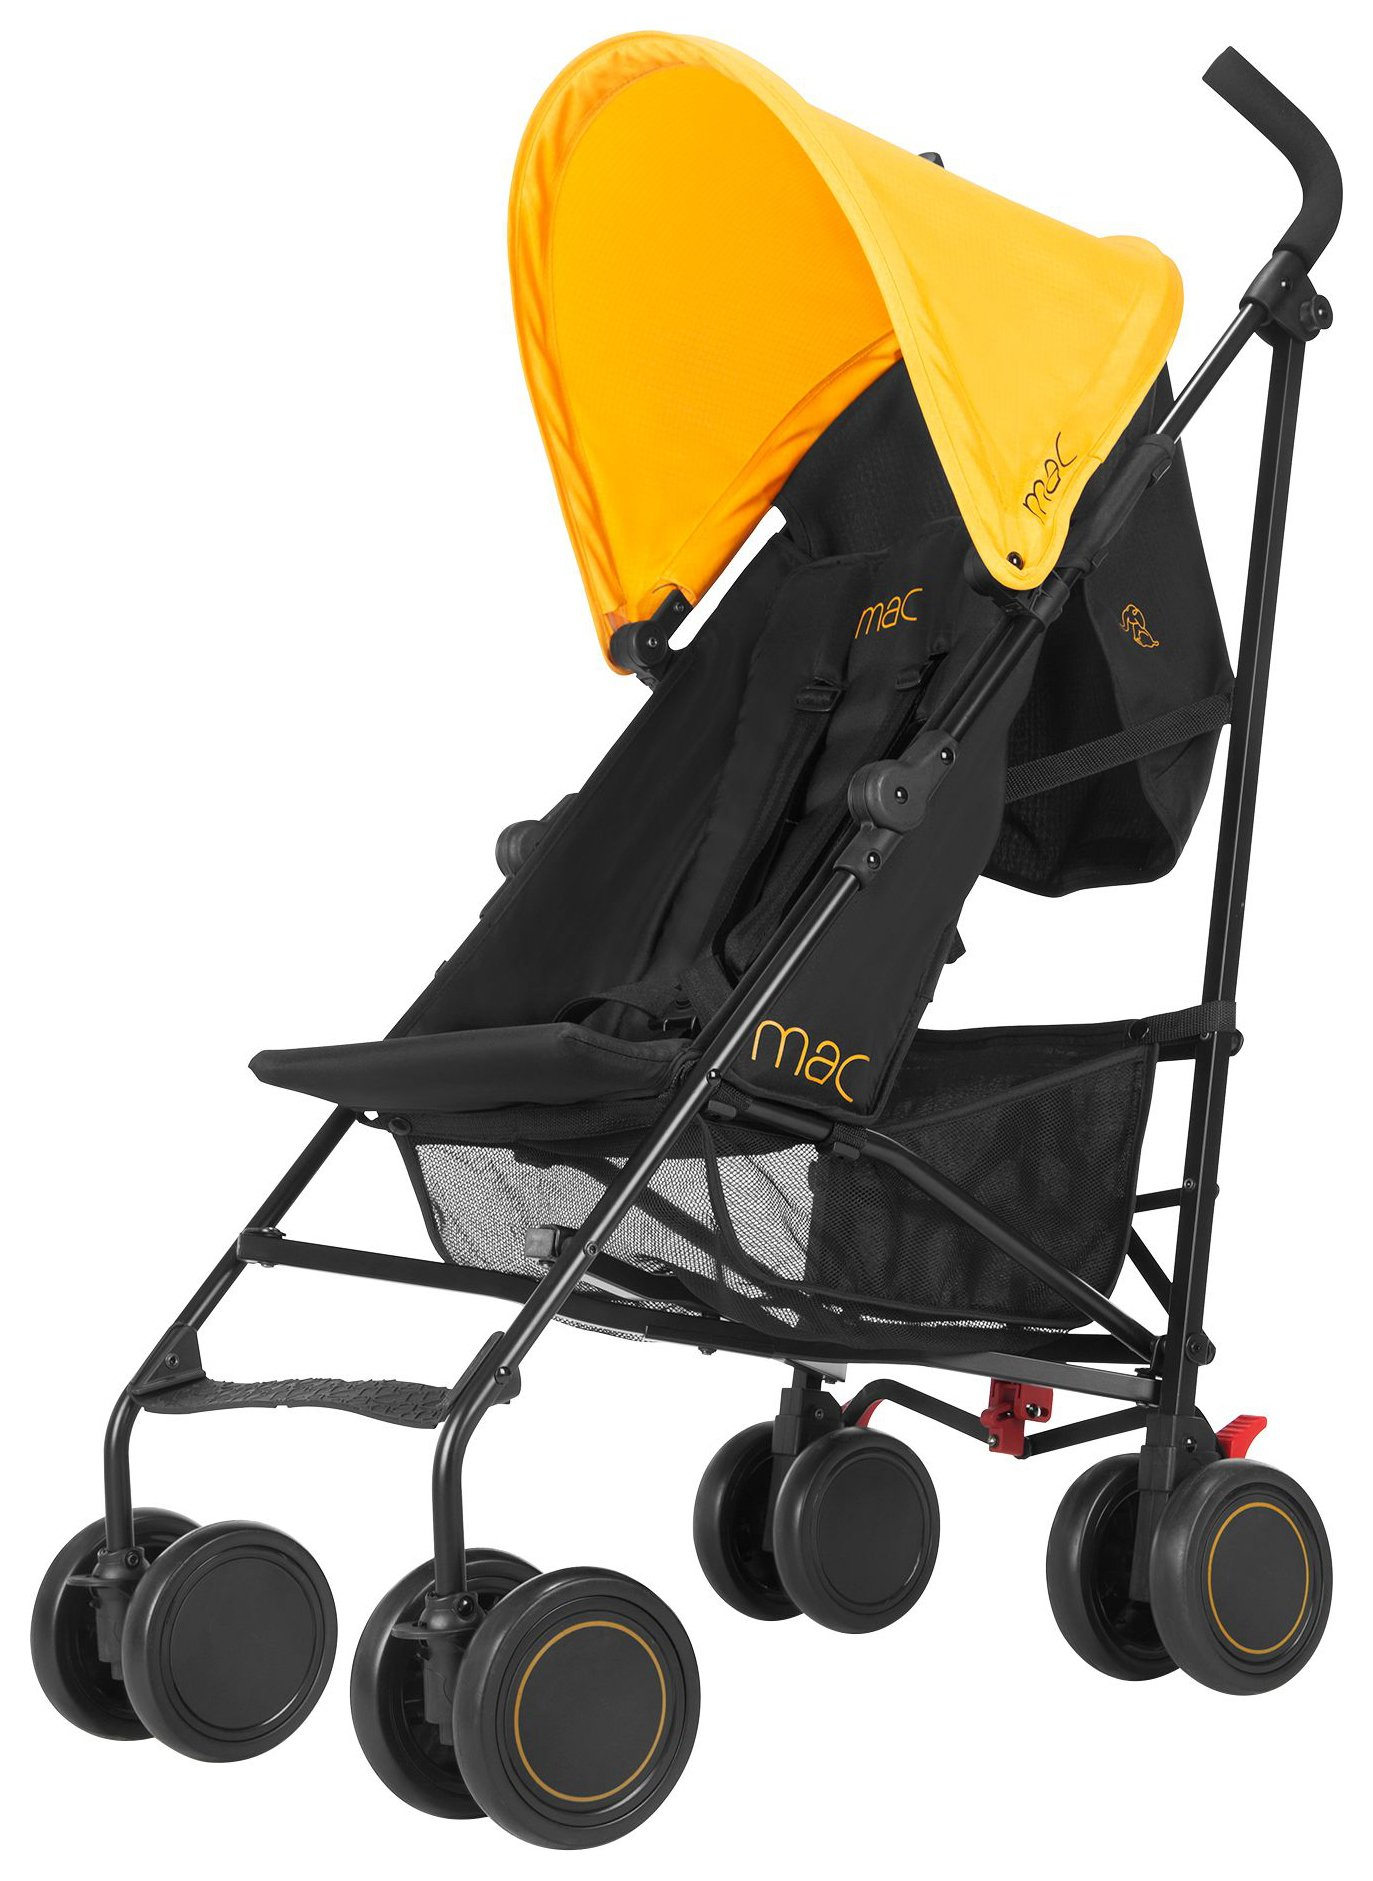 Maclaren Stroller Uk Reviews Mac By Maclaren Black Marigold M2 Pushchair Reviews